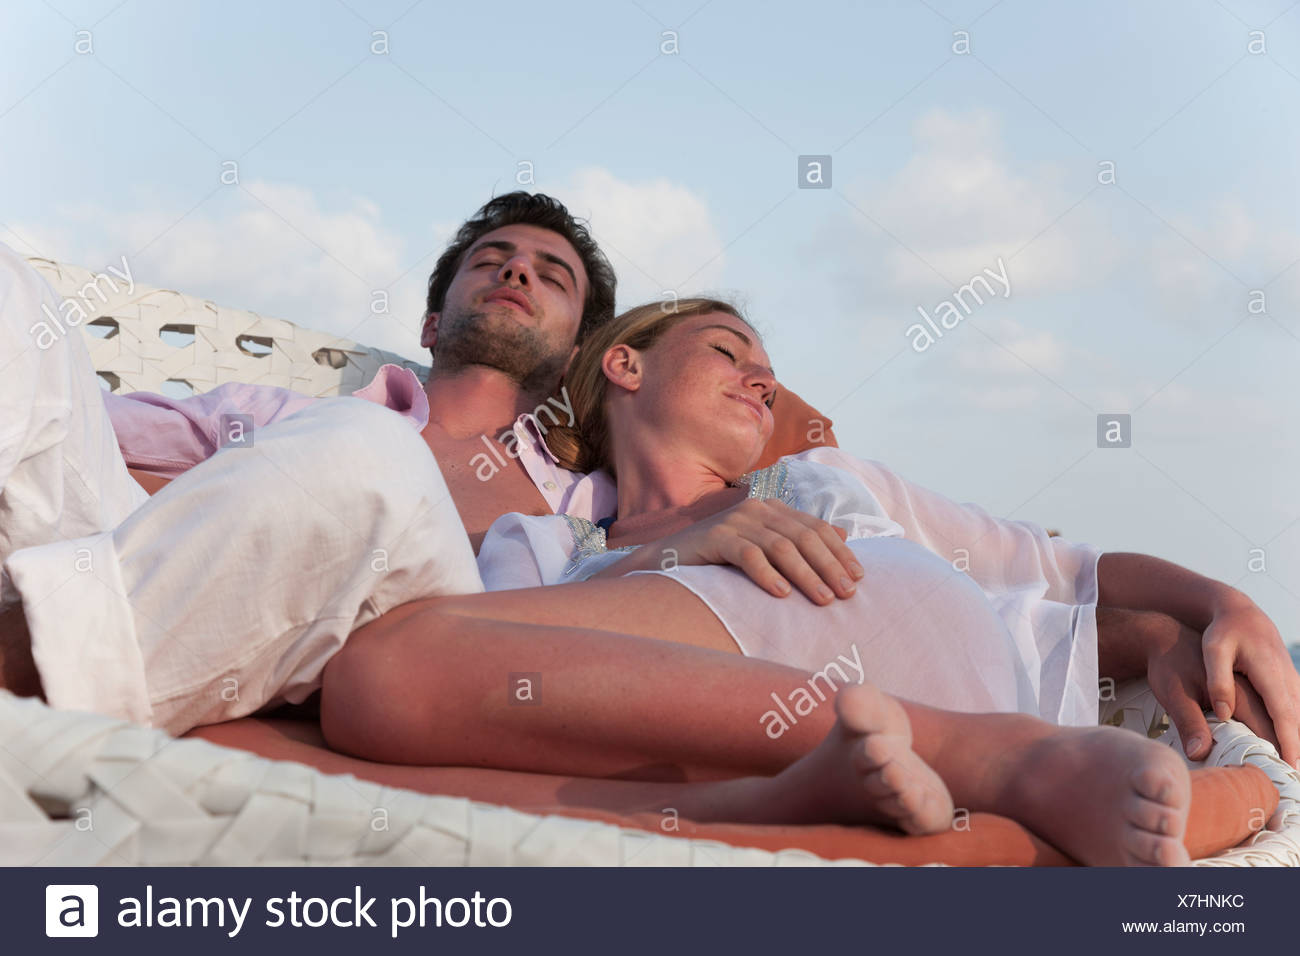 Couple sleeping in wicker chair - Stock Image